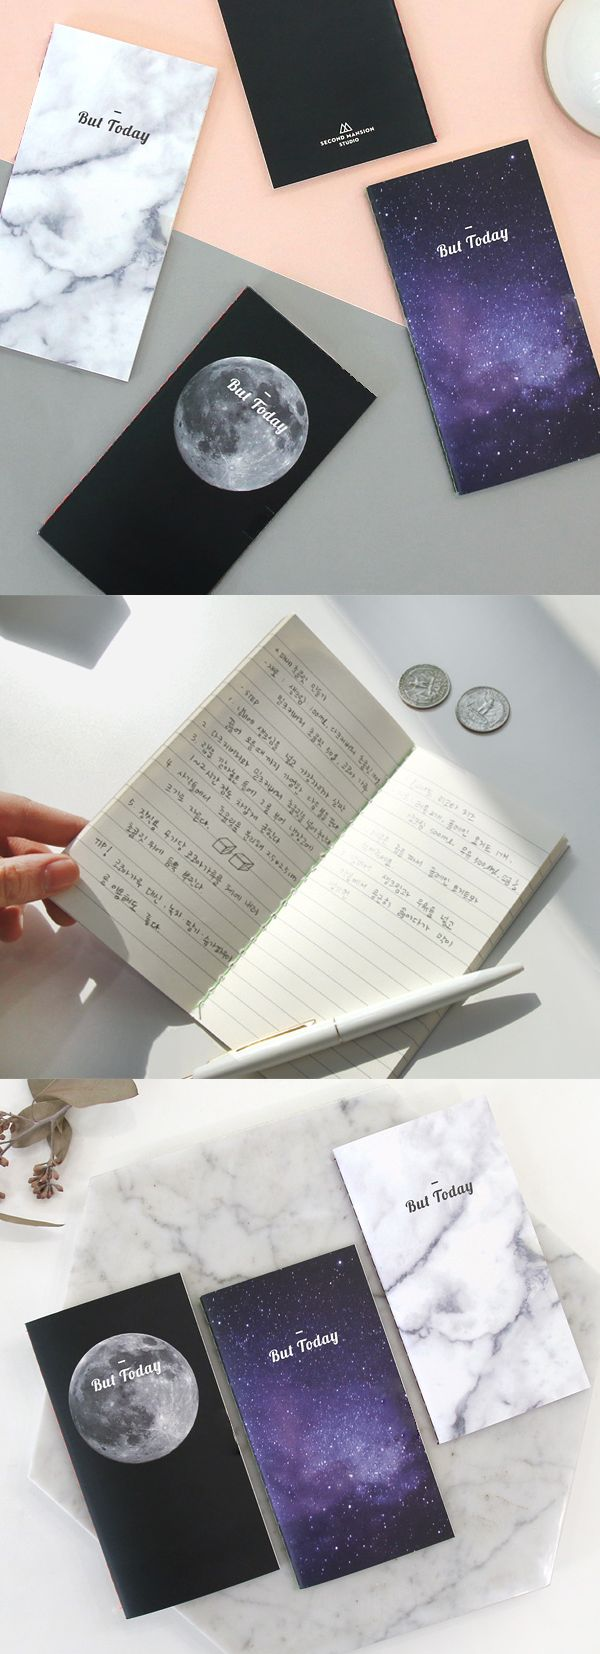 Diy notebook covers so your books and you will stand out at school - A Beautiful Pocket Sized Notebook Where You Can Write Your Dreams Goals Or